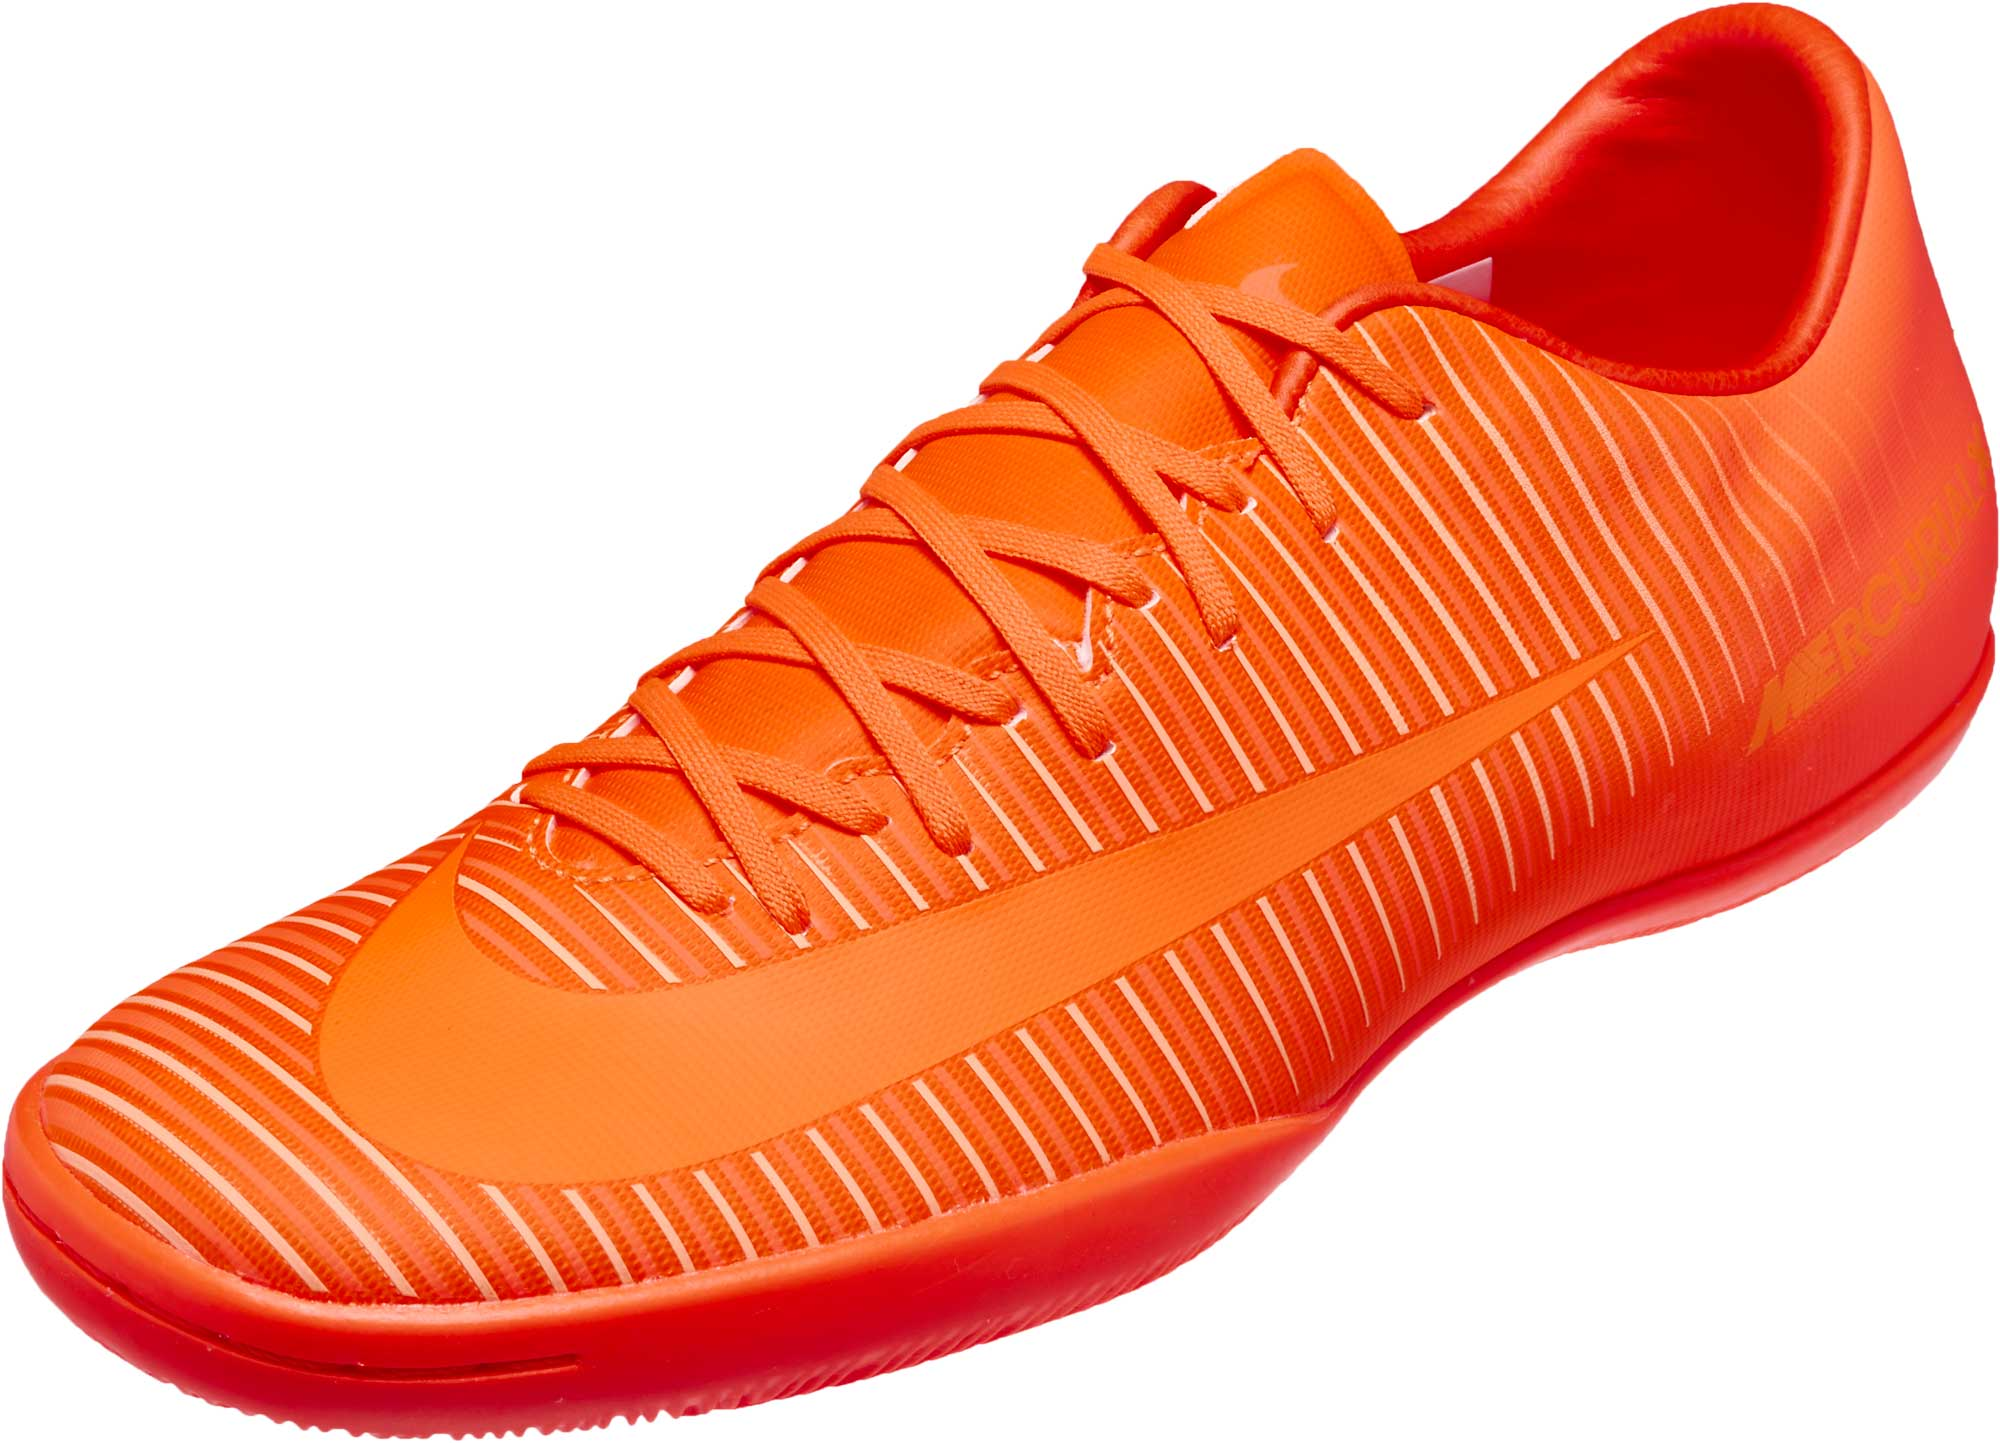 Nike Mercurial Victory VI IC Soccer Shoes – Total Orange   Hyper Crimson 3e093d3ad4d